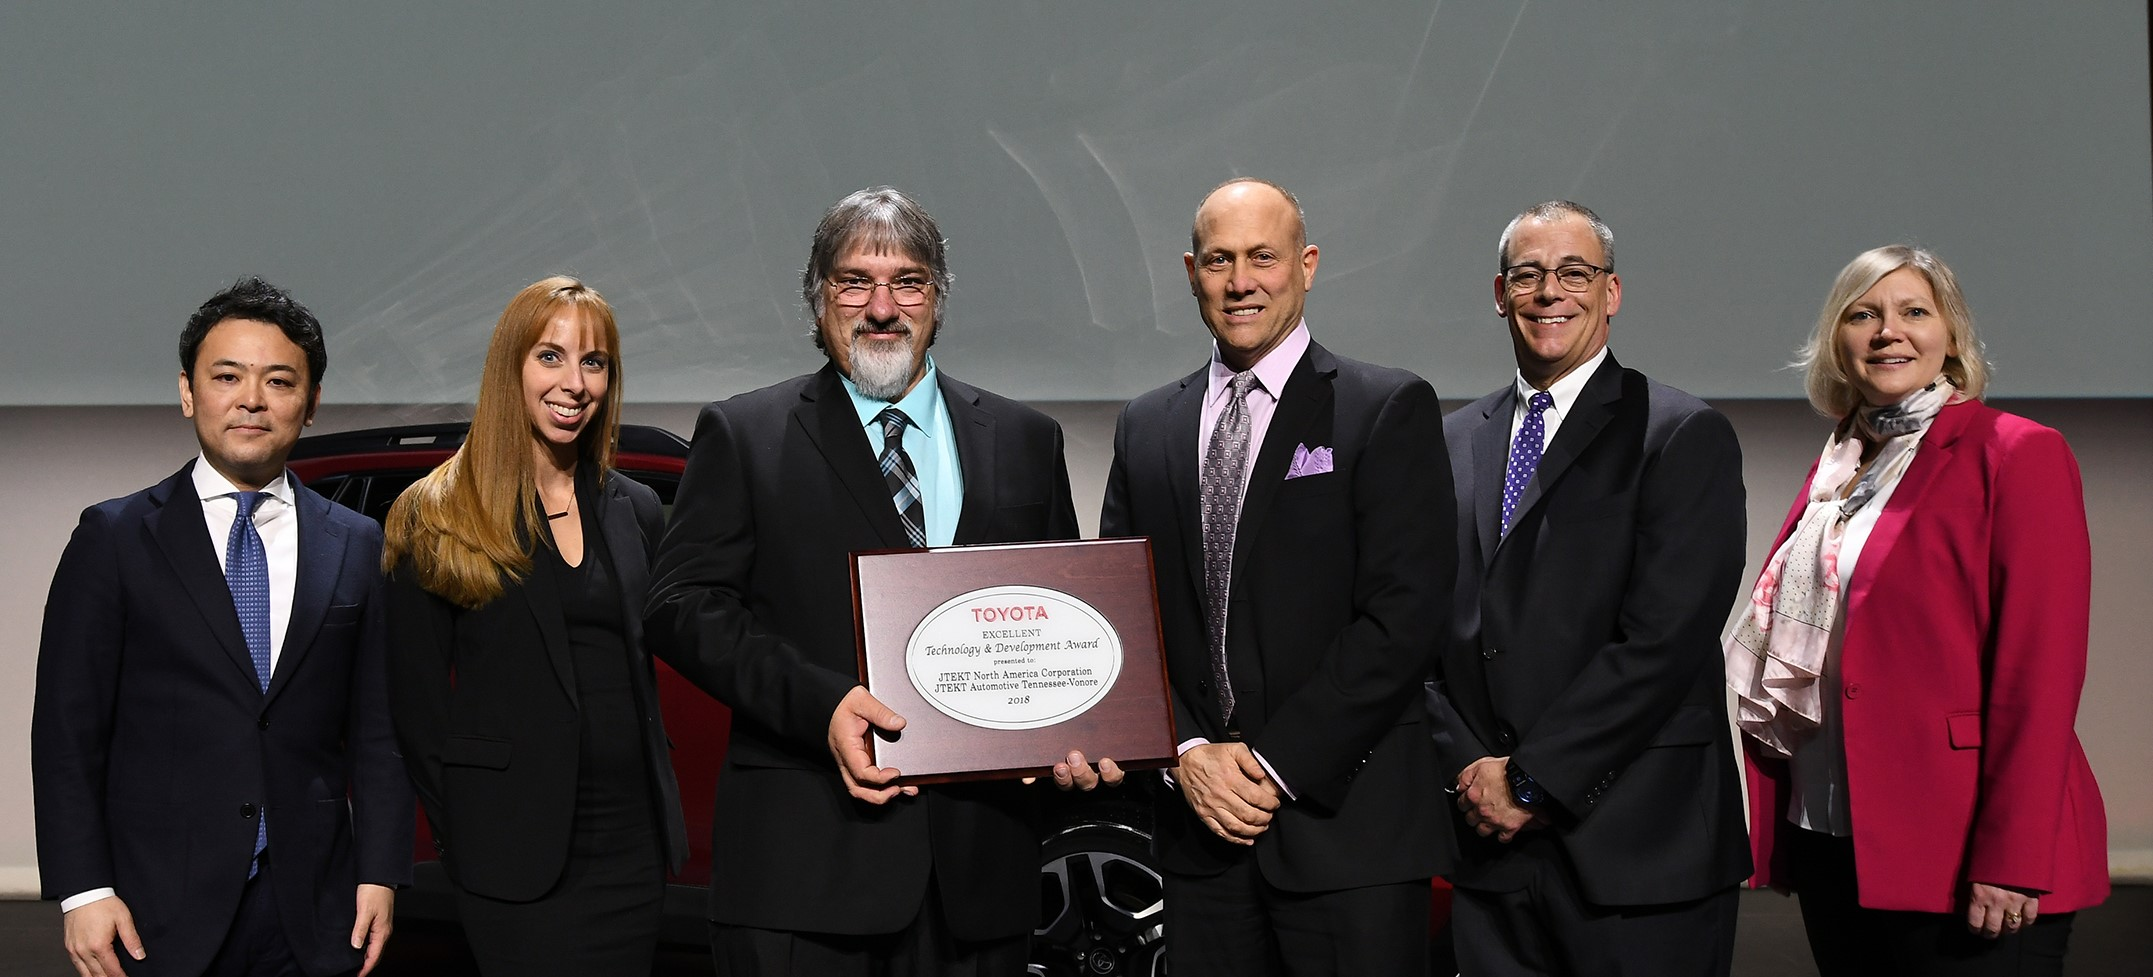 JTEKT NORTH AMERICA'S VONORE, TN FACILTY RECEIVES TOYOTA AWARD